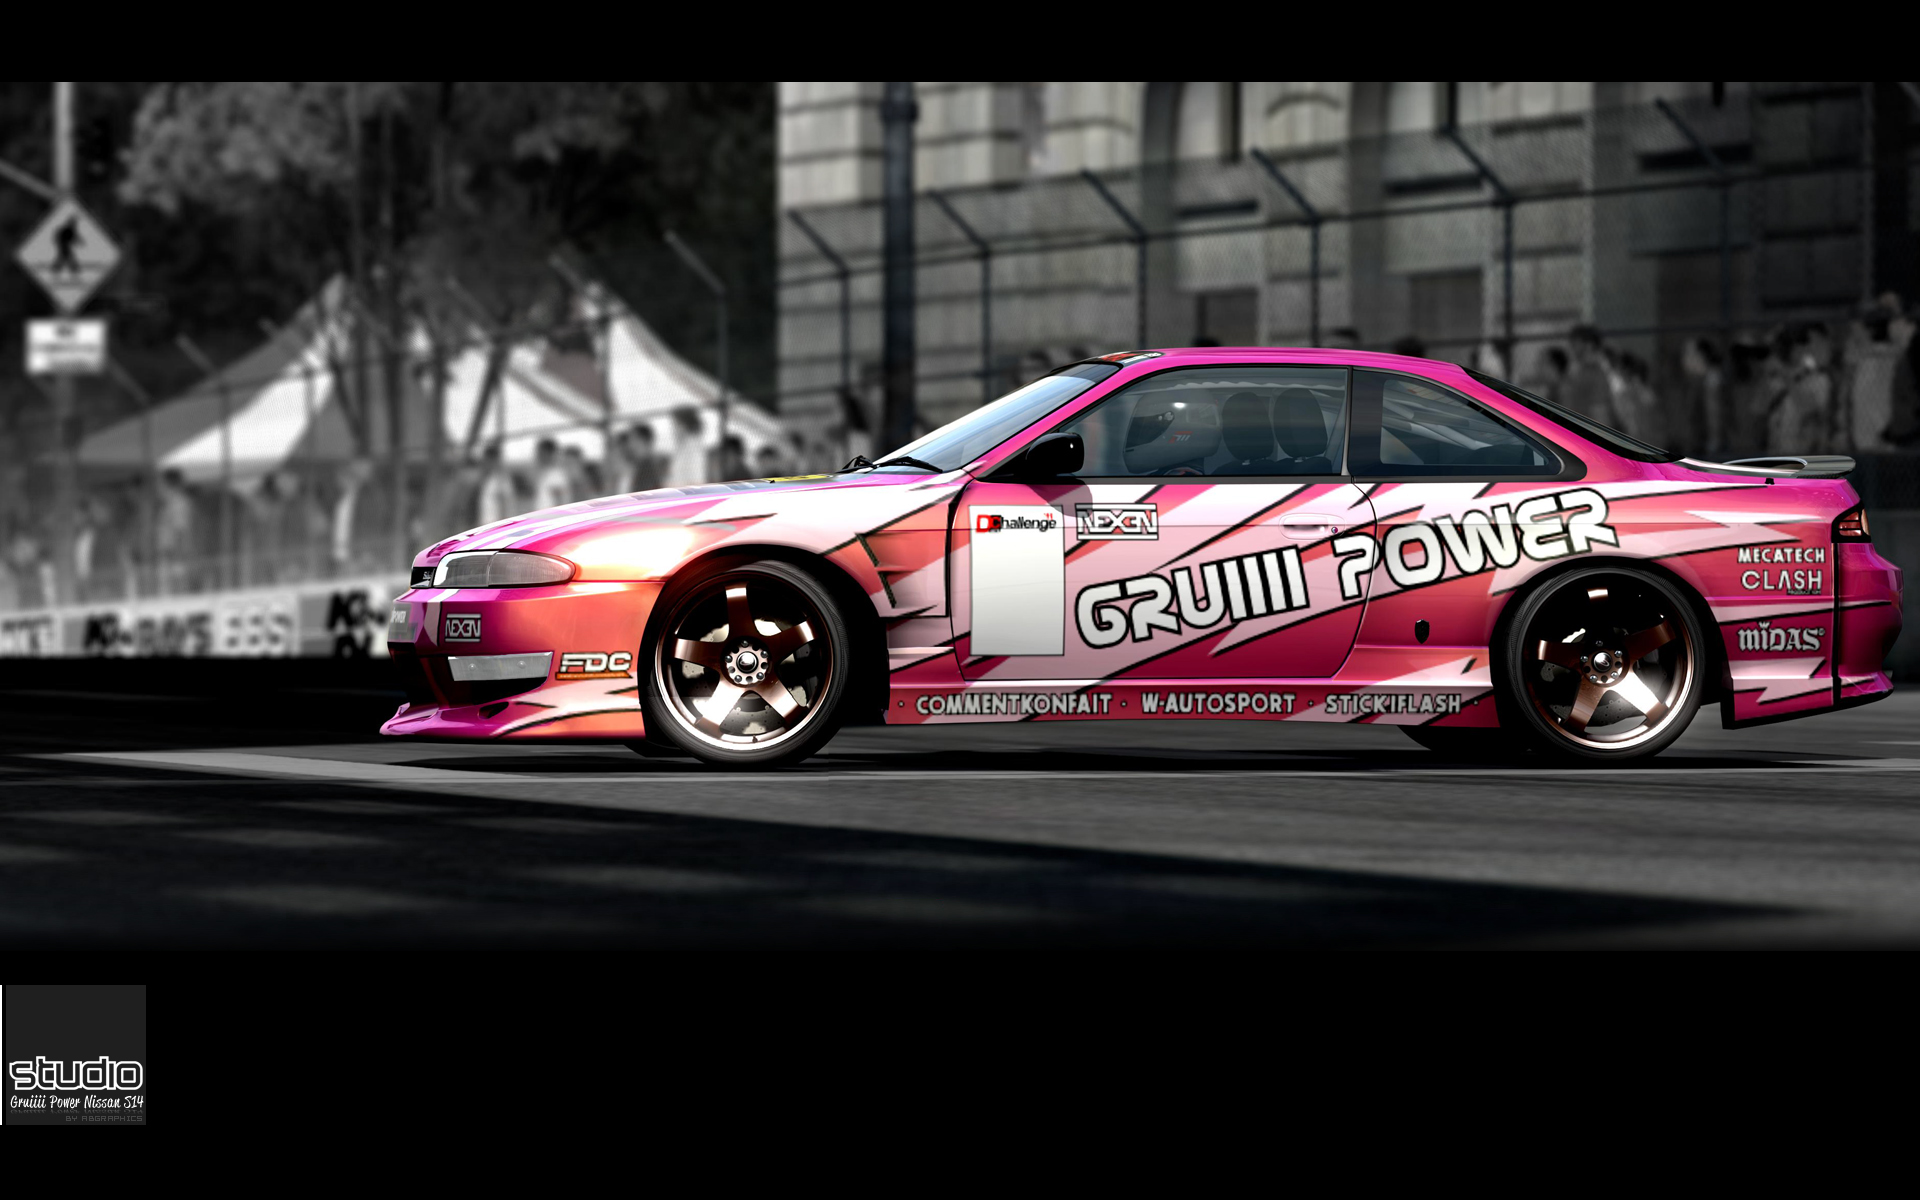 STUDIO: GRUIIII POWER by atobgraphics